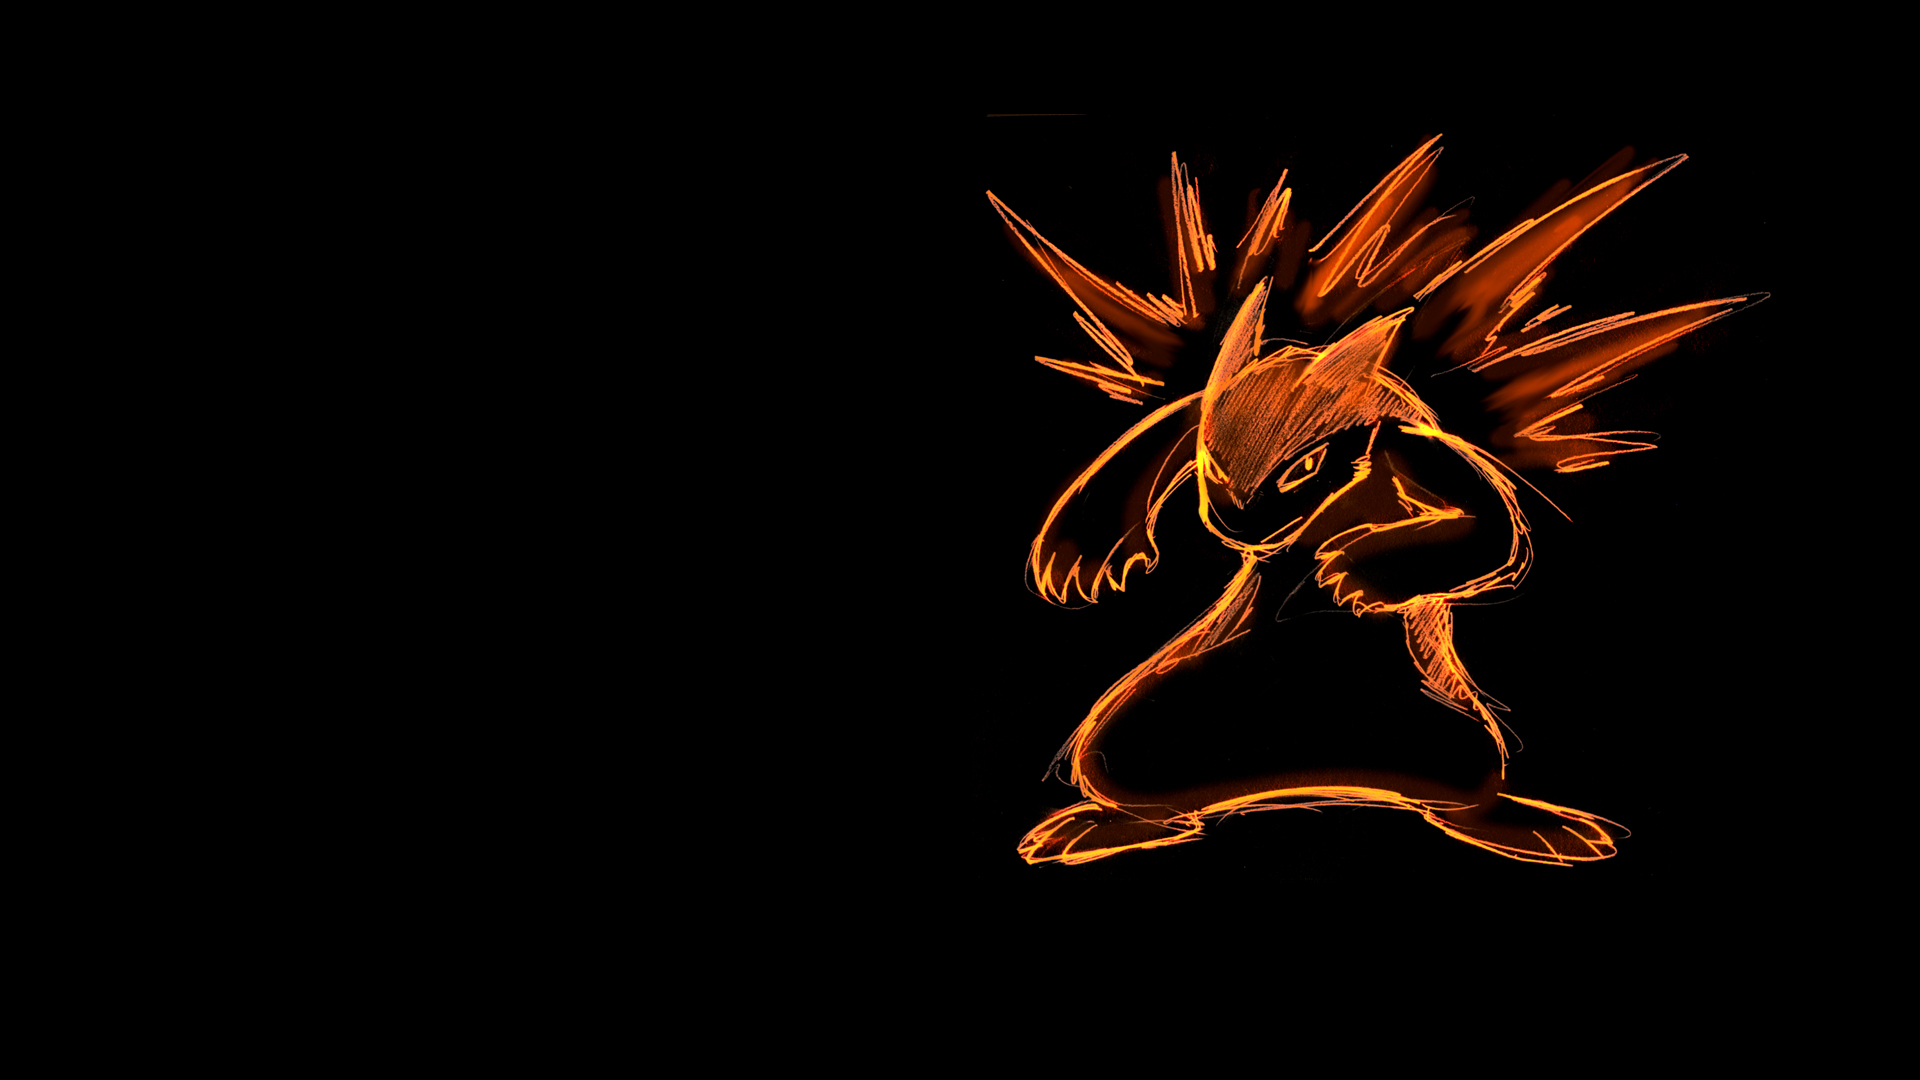 Pokemon Wallpaper 1920x1080 Pokemon 1920x1080